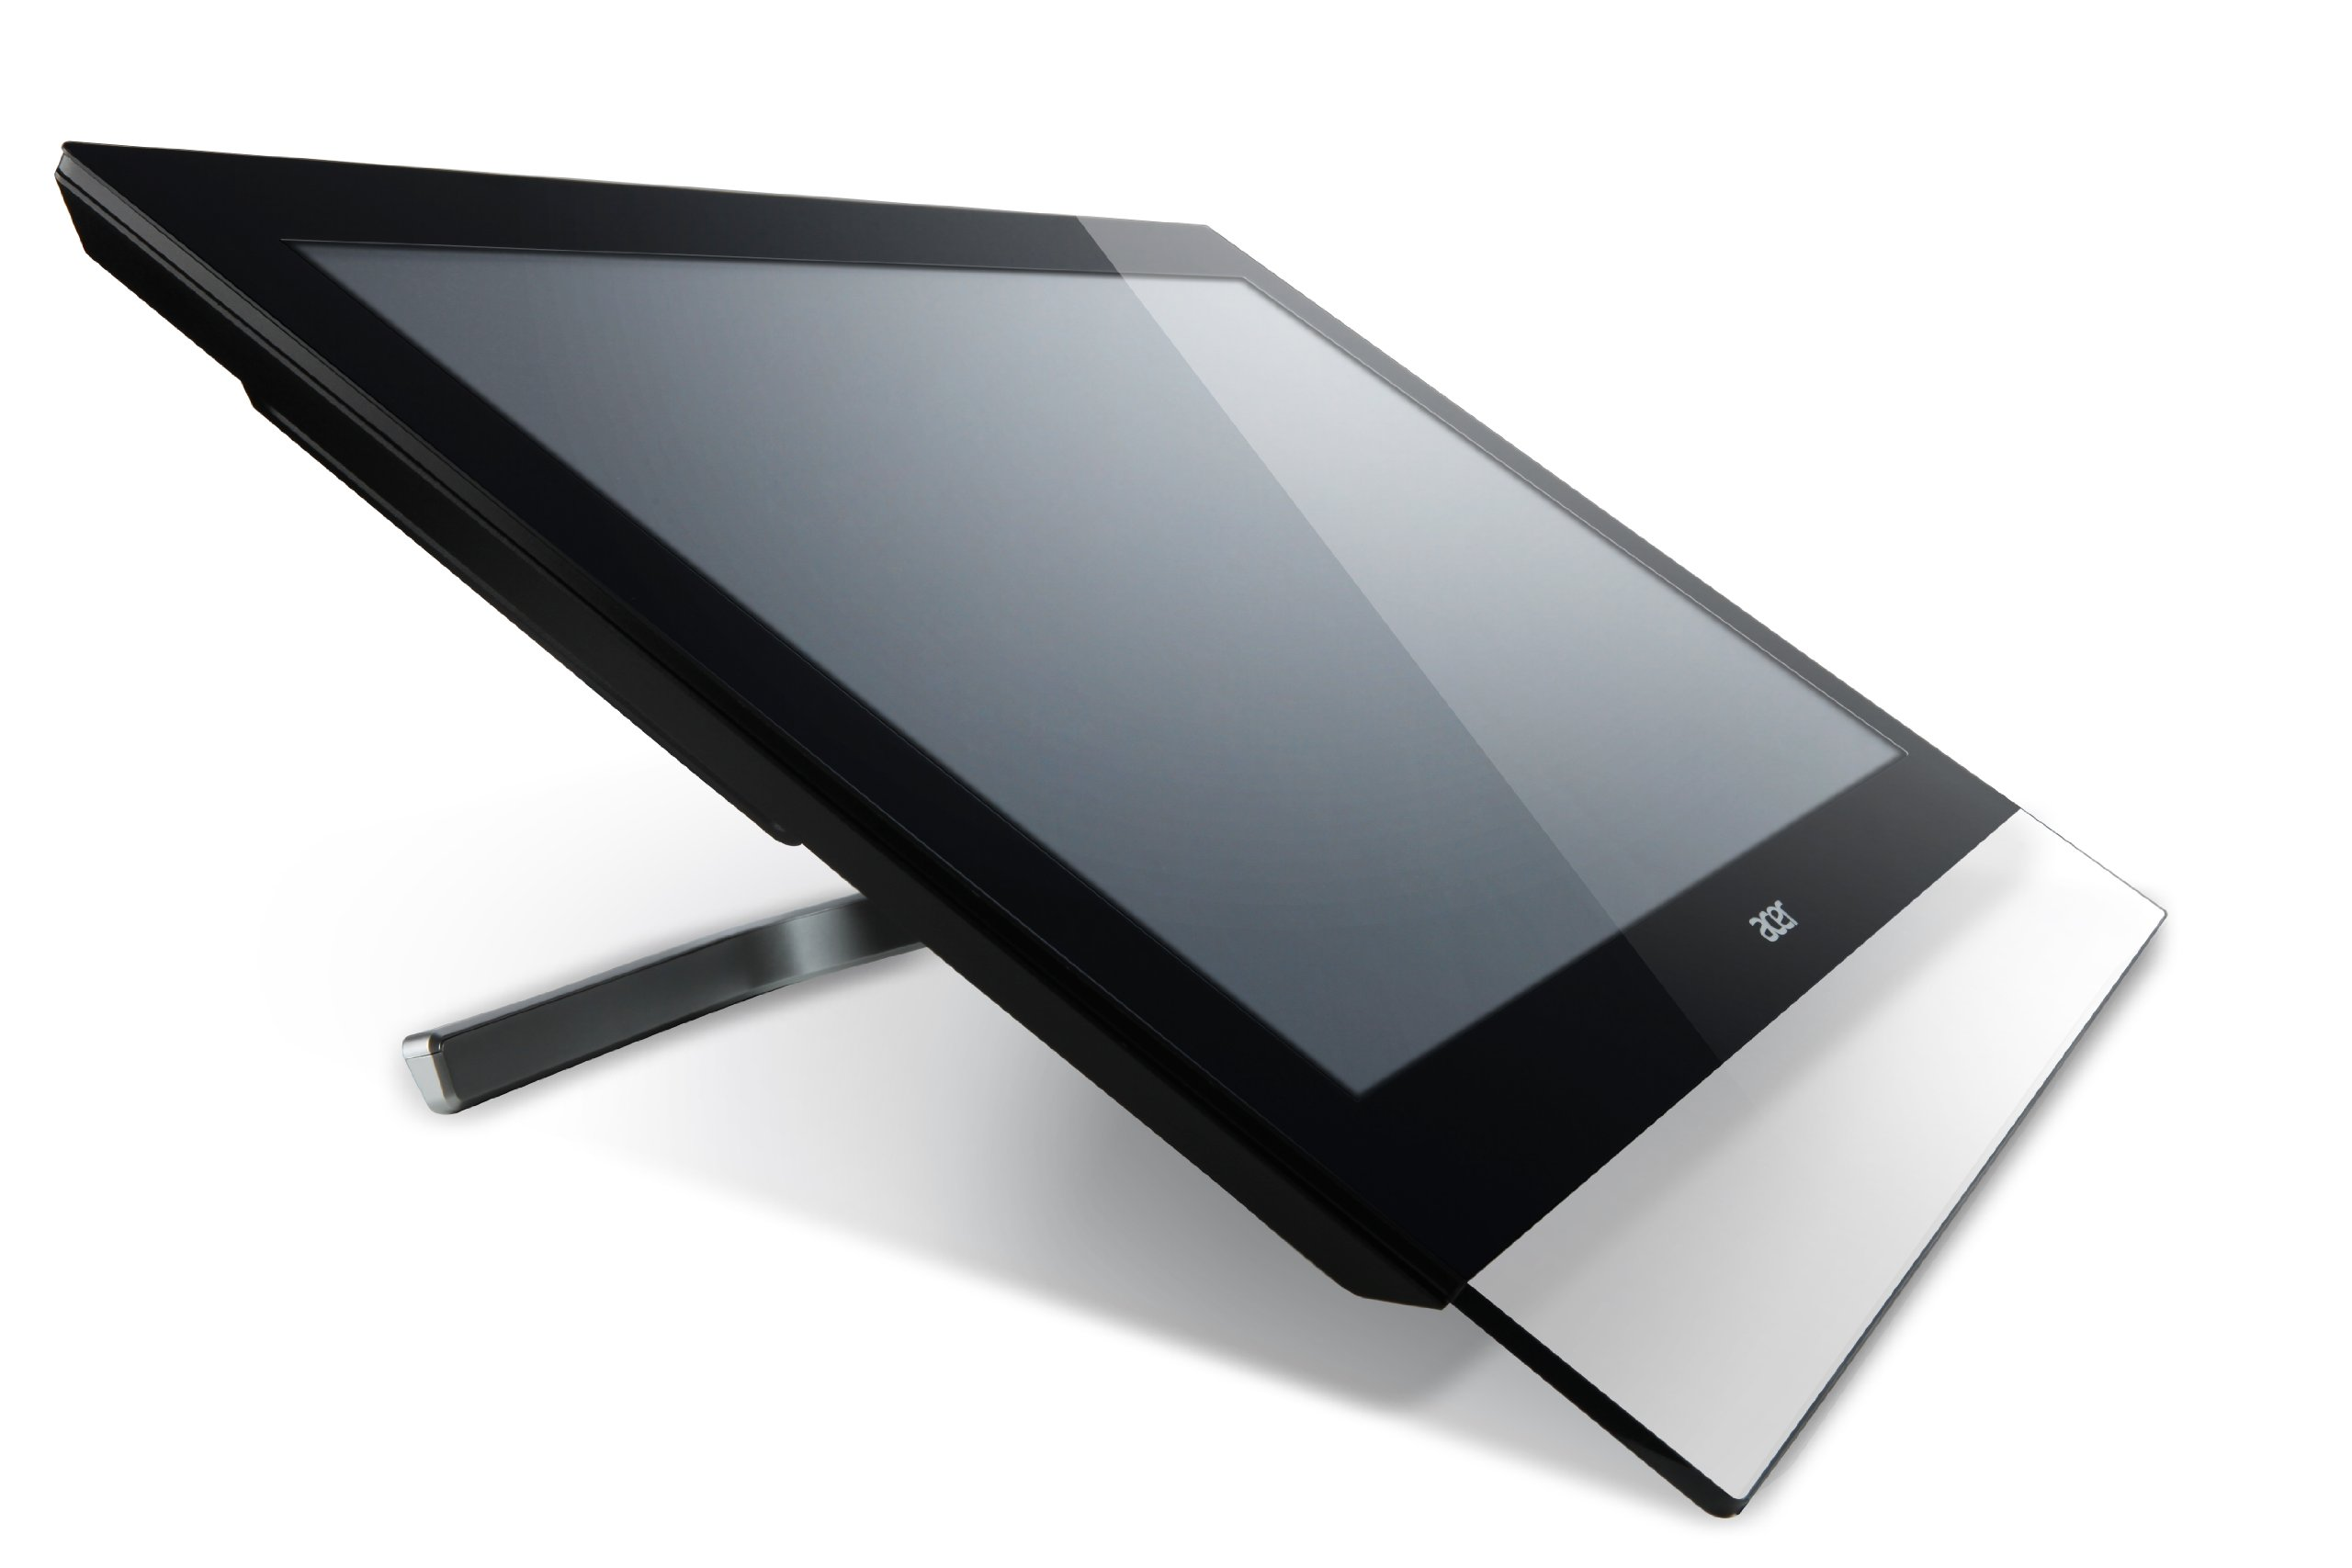 Acer T272HL bmjjz 27-Inch (1920 x 1080) Touch Screen Widescreen Monitor by Acer (Image #9)